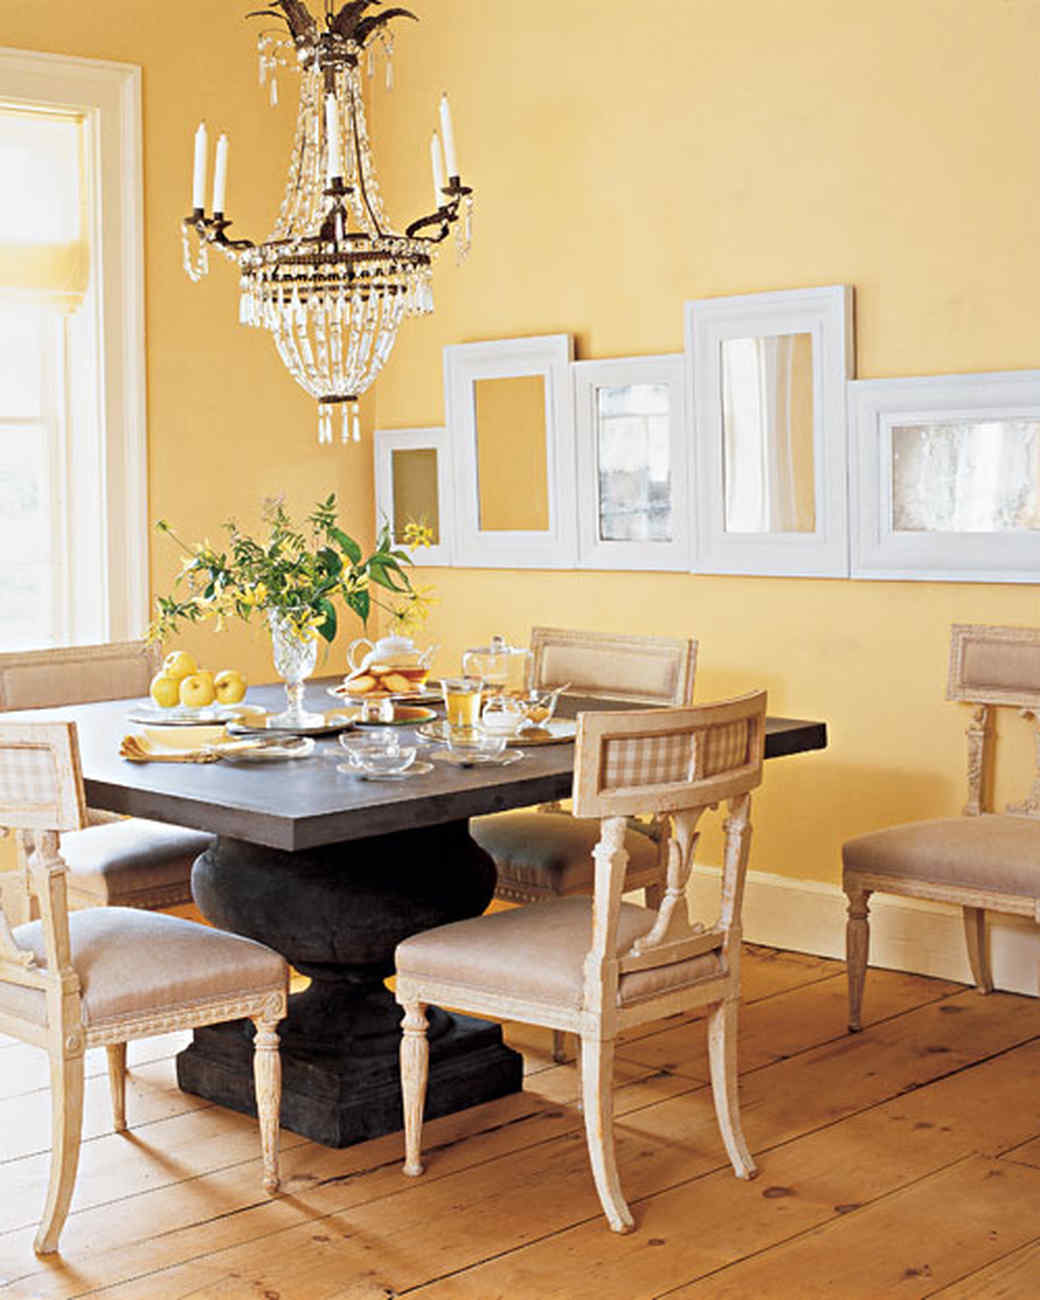 Yellow Paint For Kitchen Walls: Martha Stewart